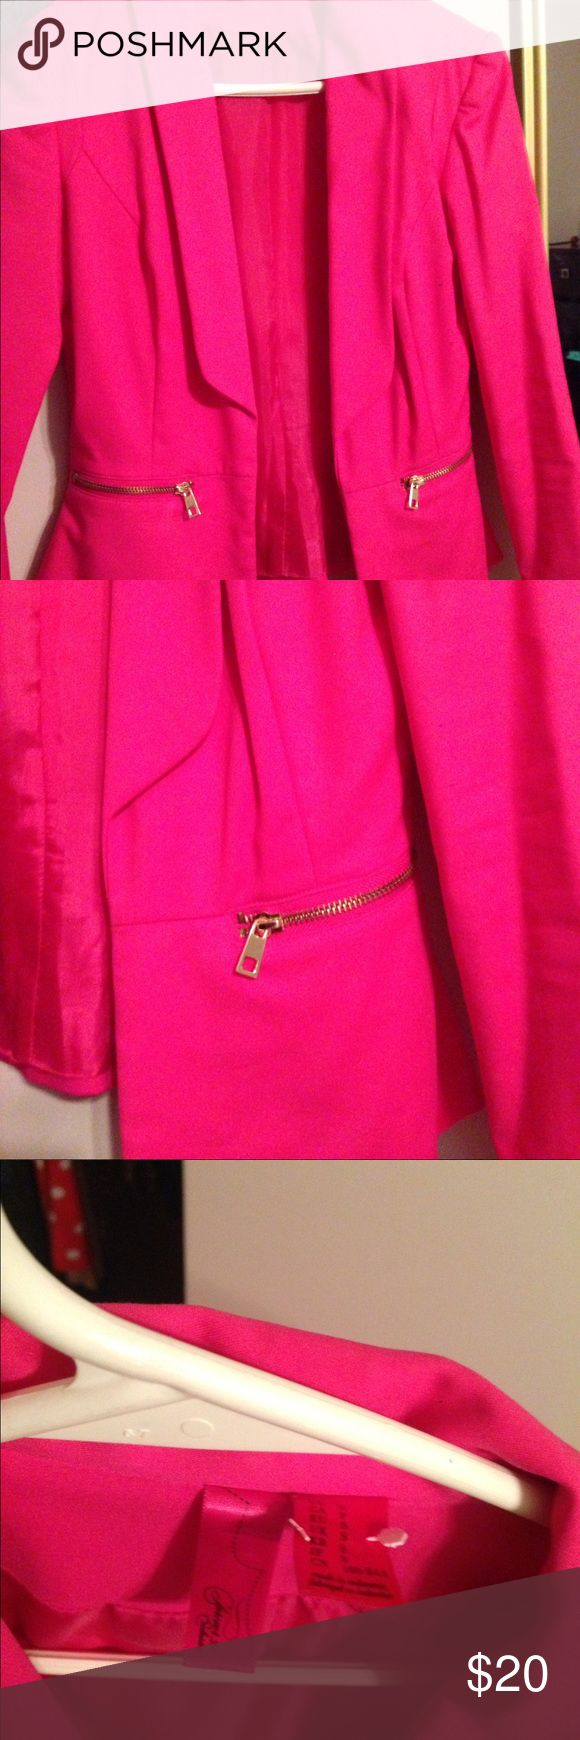 Hot pink blazer Beautiful hot pink blazer perfect for the spring summer season coming up . The zippers on the side are gold . Size is S from forever 21 Forever 21 Jackets & Coats Blazers